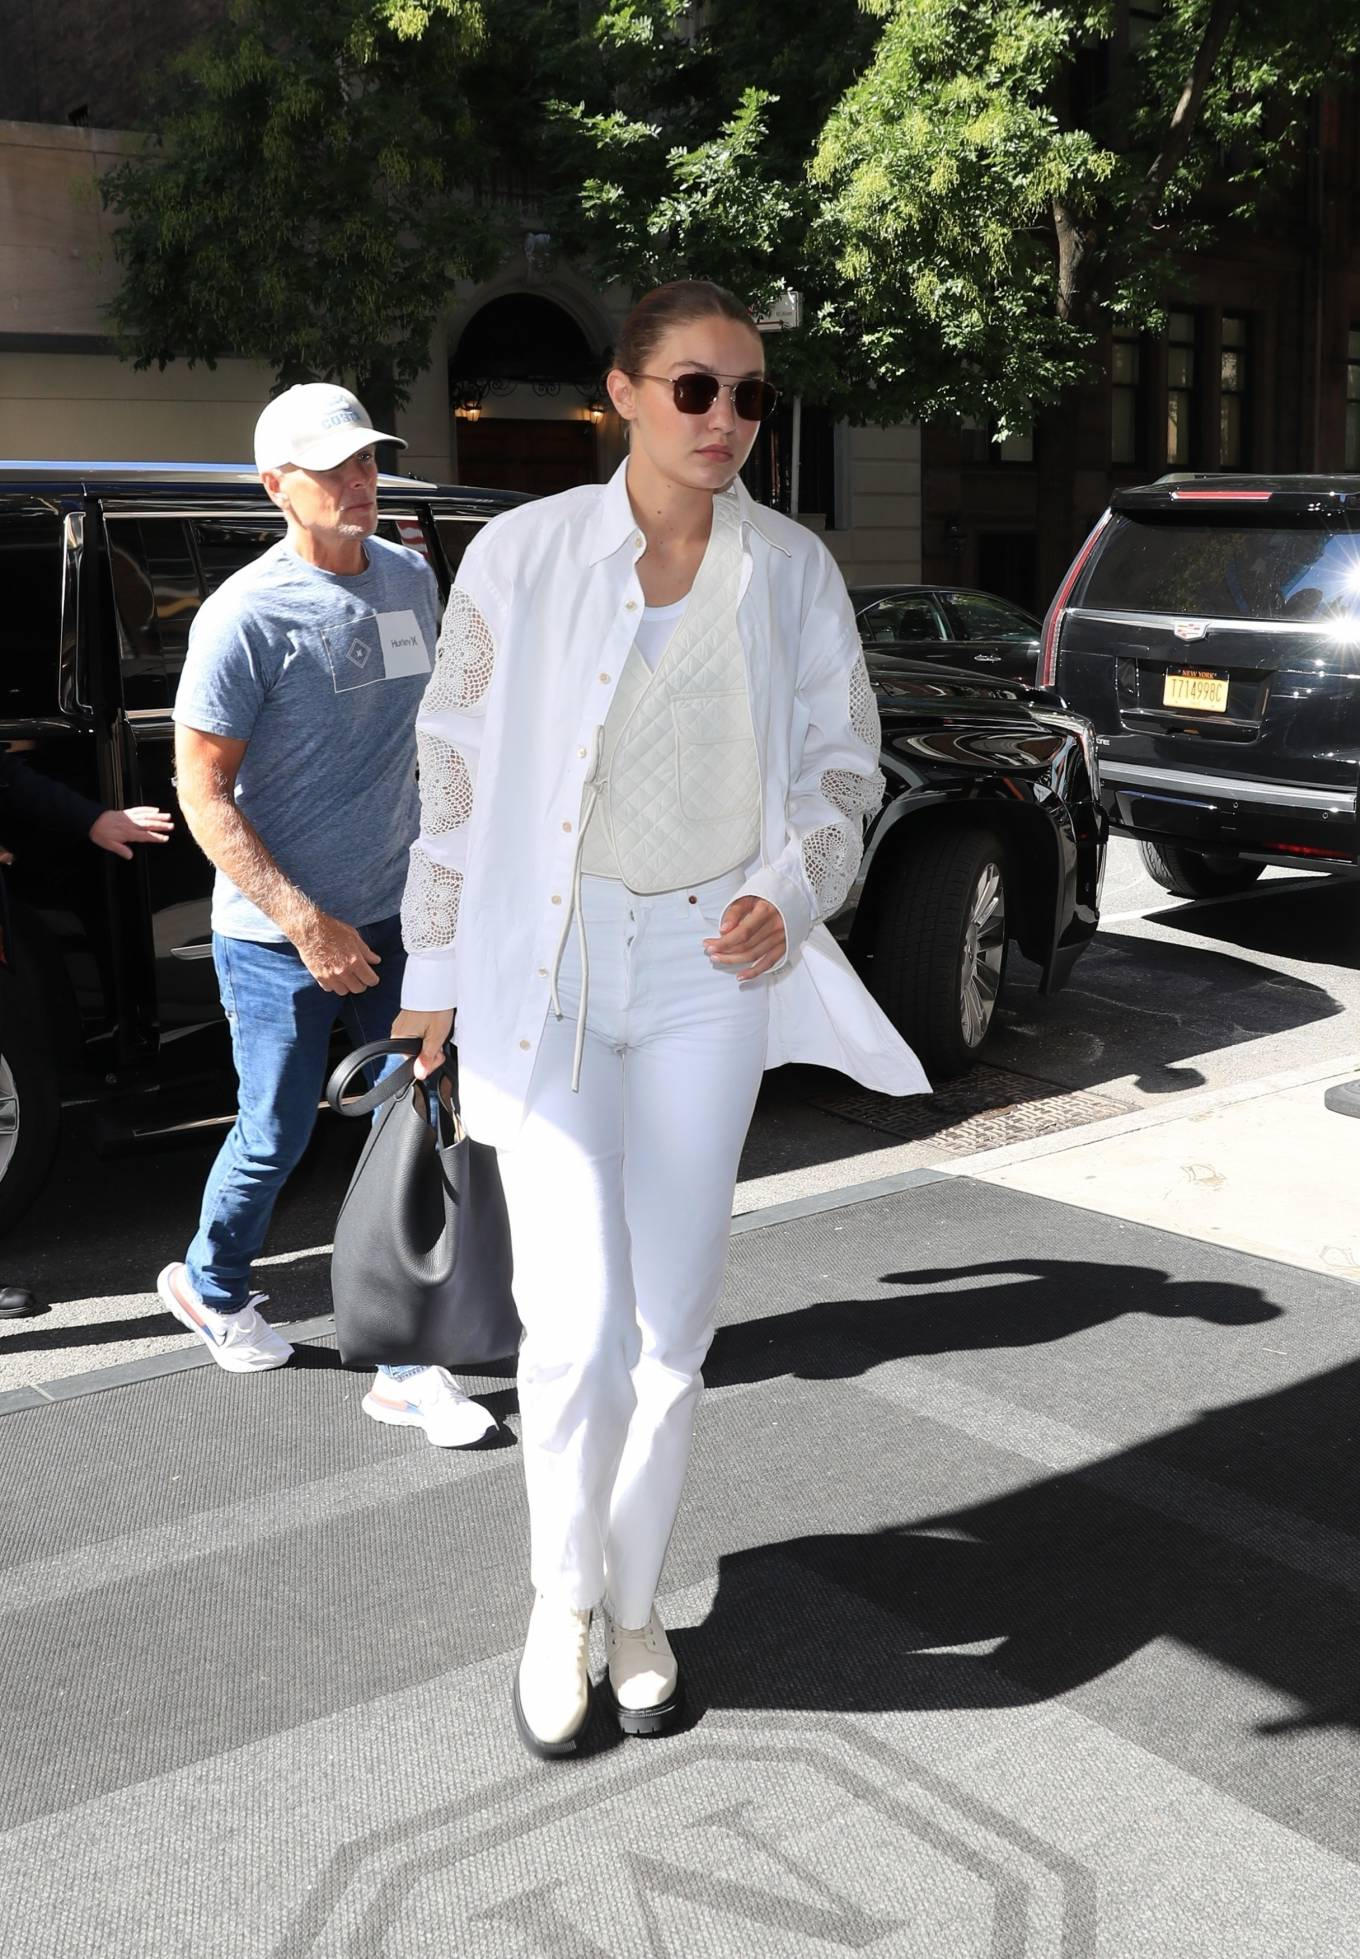 Gigi Hadid - In an all-white ensemble as she steps out during New York Fashion Week